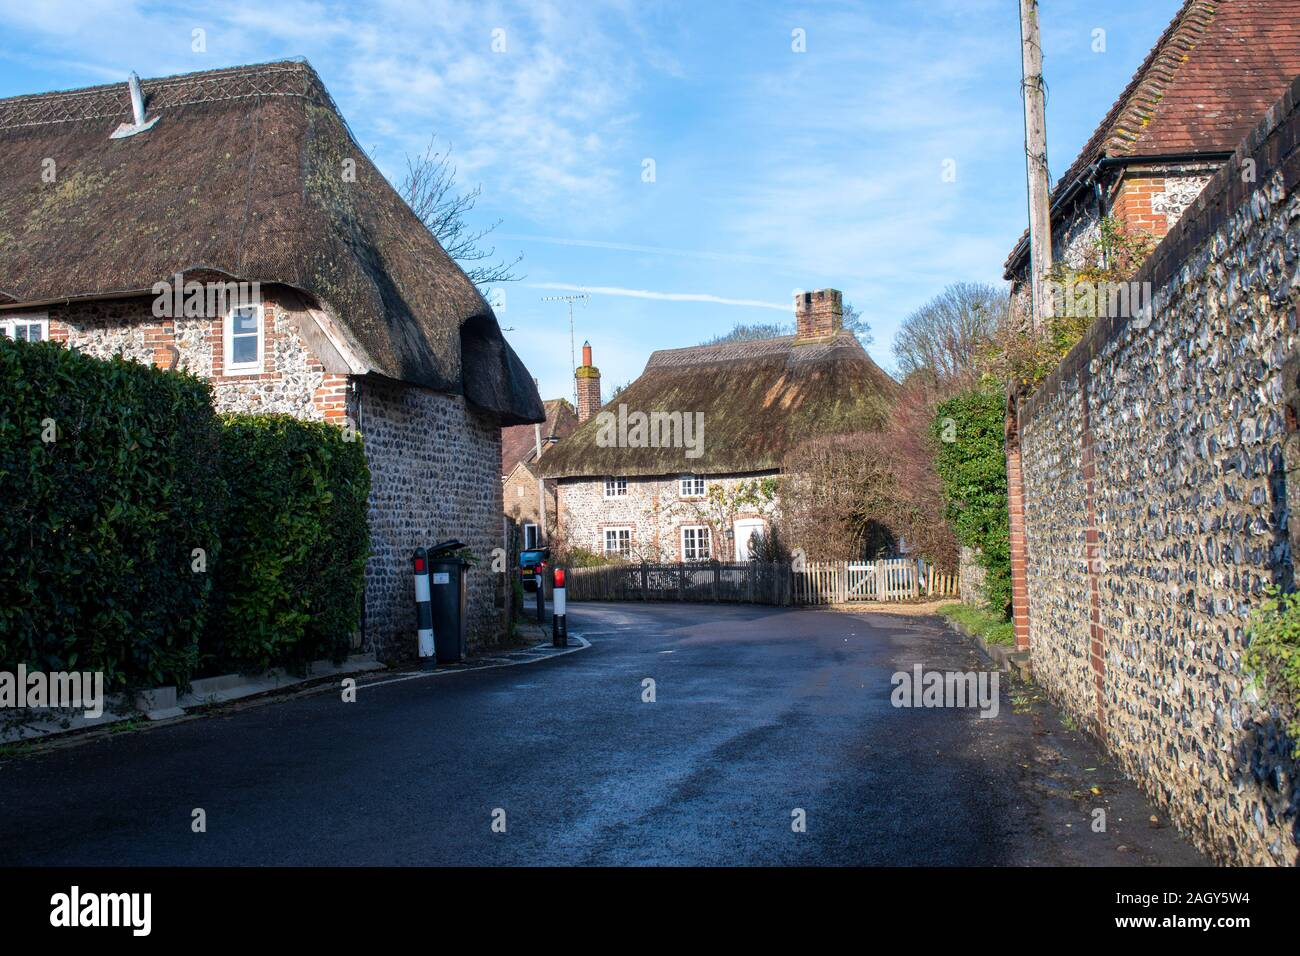 View of Thatched Cottages in the old traditional English village of Singleton UK. Stock Photo